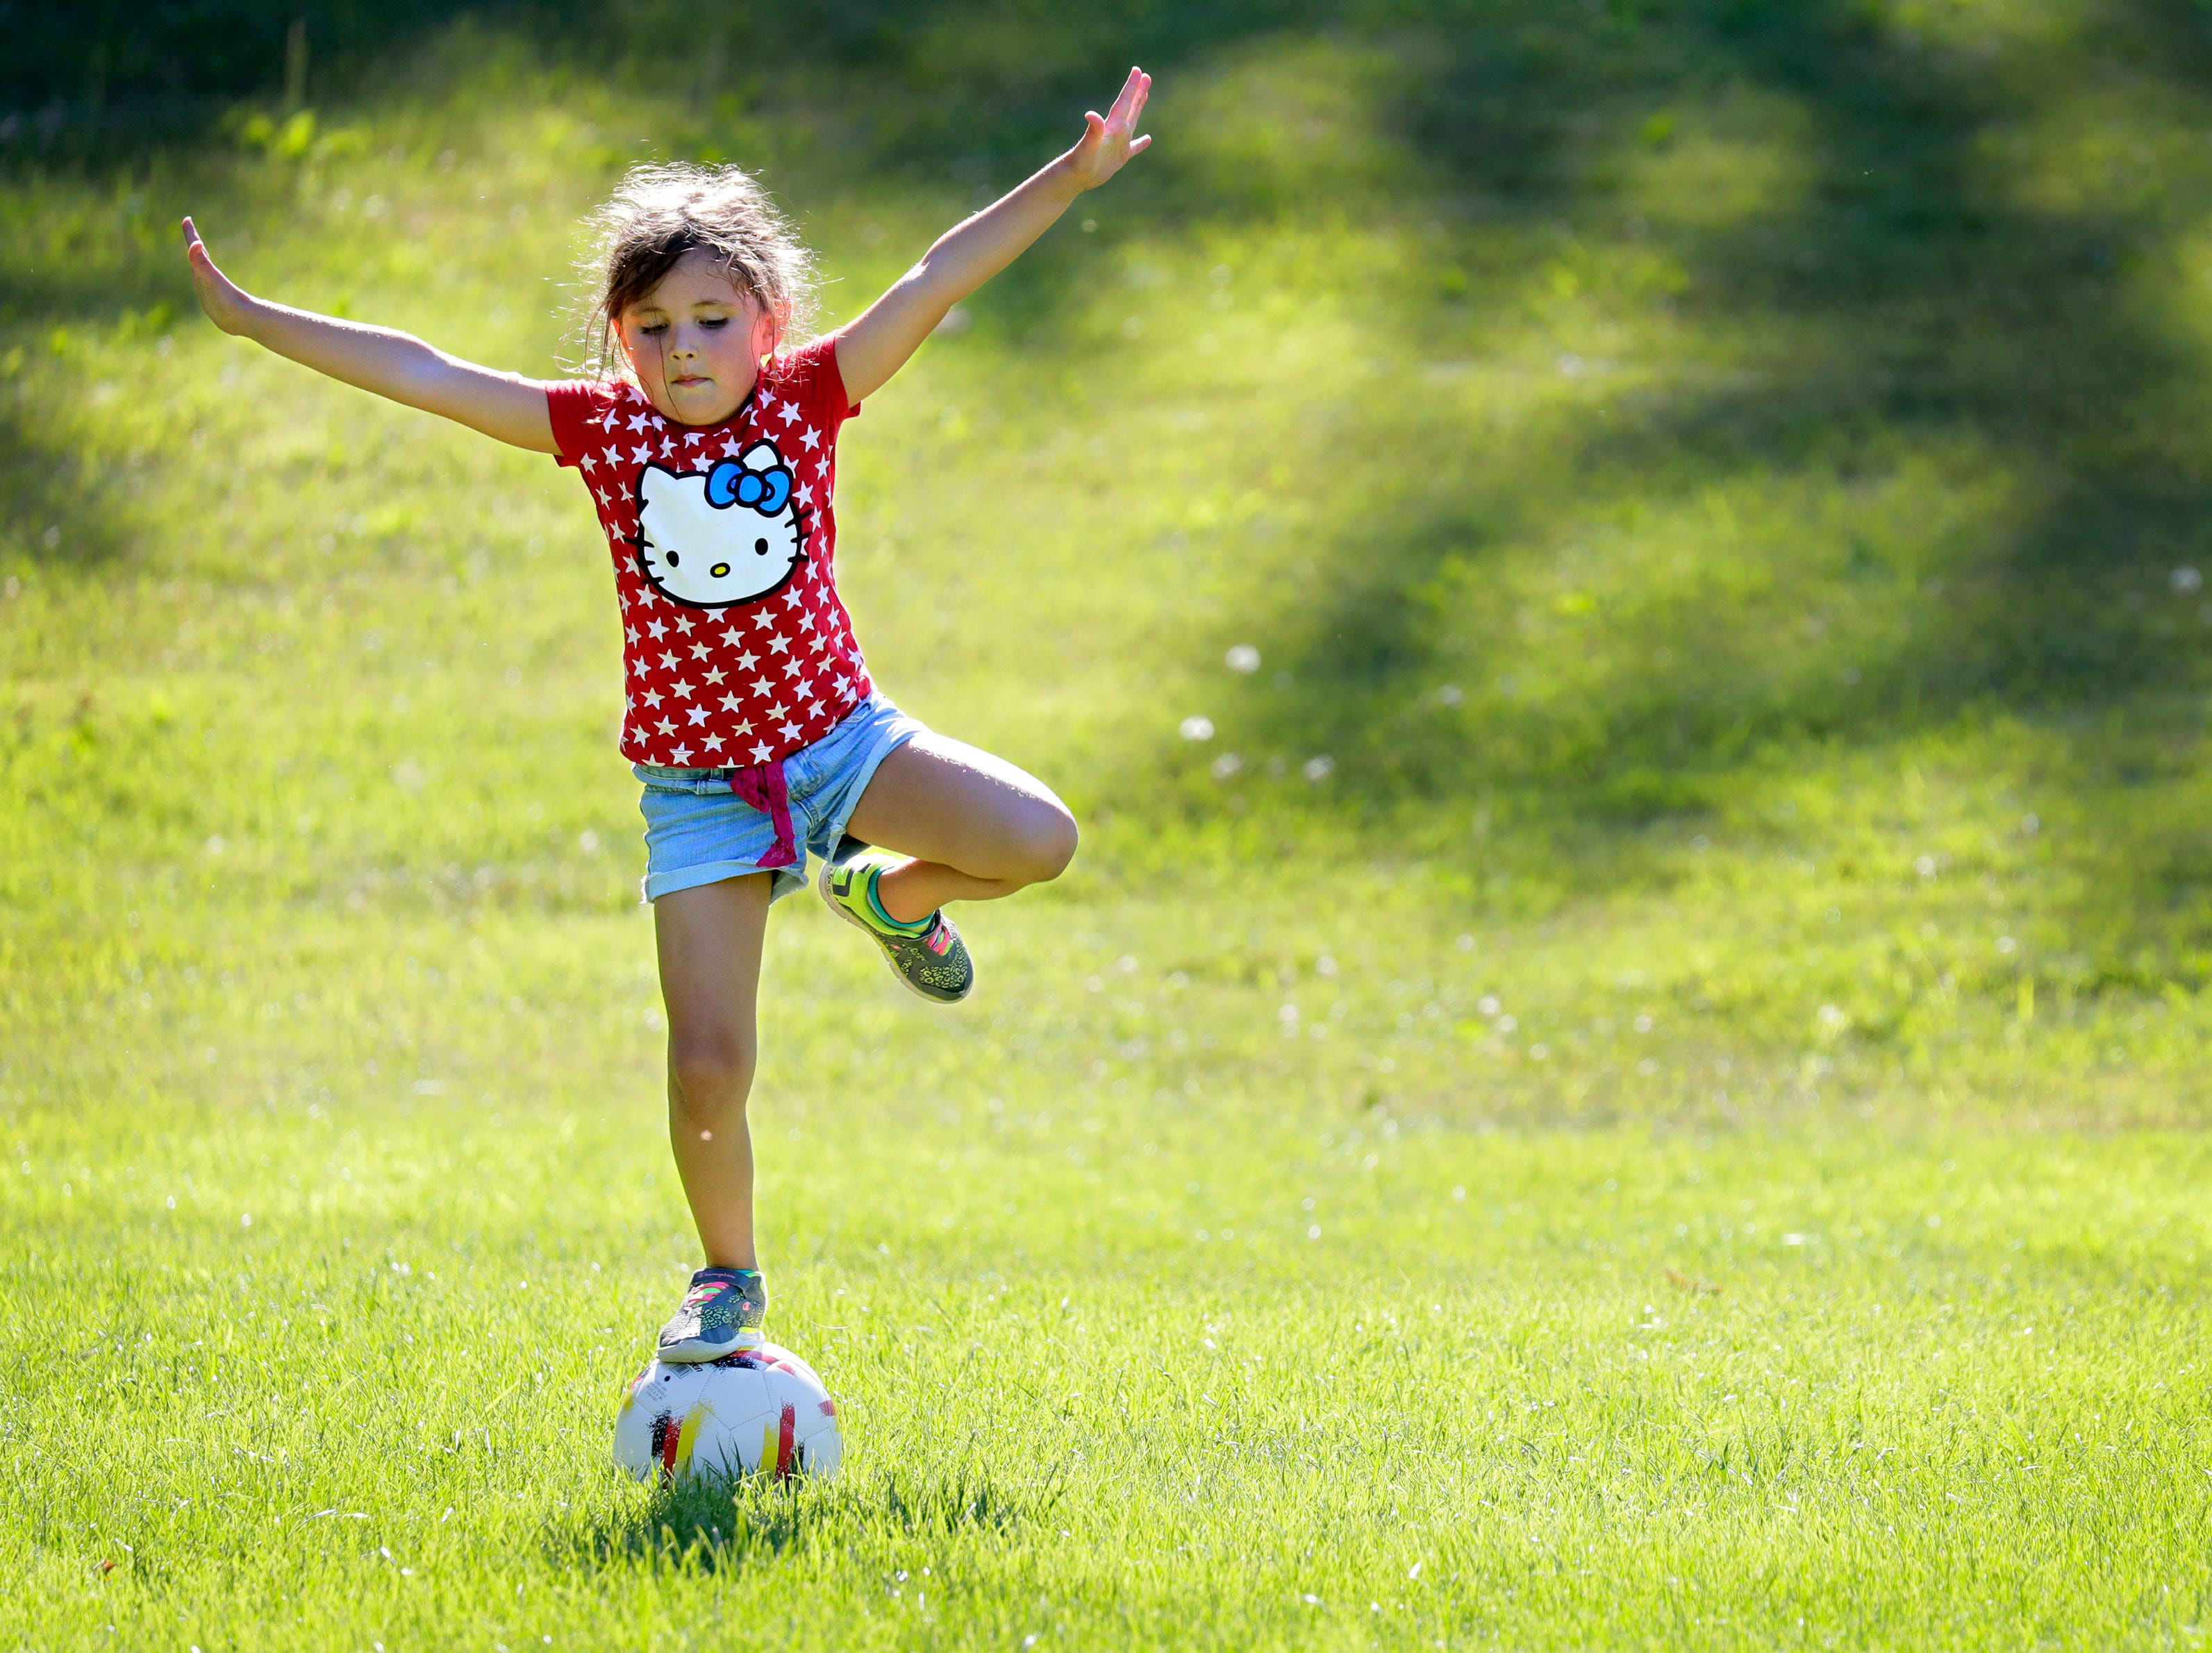 "Abigail Barnes, 6, of Kaukauna works on her unique soccer skills Friday, July 6, 2018, at the Don Fries Recreational Area in Combined Locks, Wis. ""I'm a daredevil. I'm superfast and do lots of crazy stuff,"" says Abigail. She was playing soccer with her brother Michael, 3, while her parents Monika and Joe Barnes were excercising in the same area.